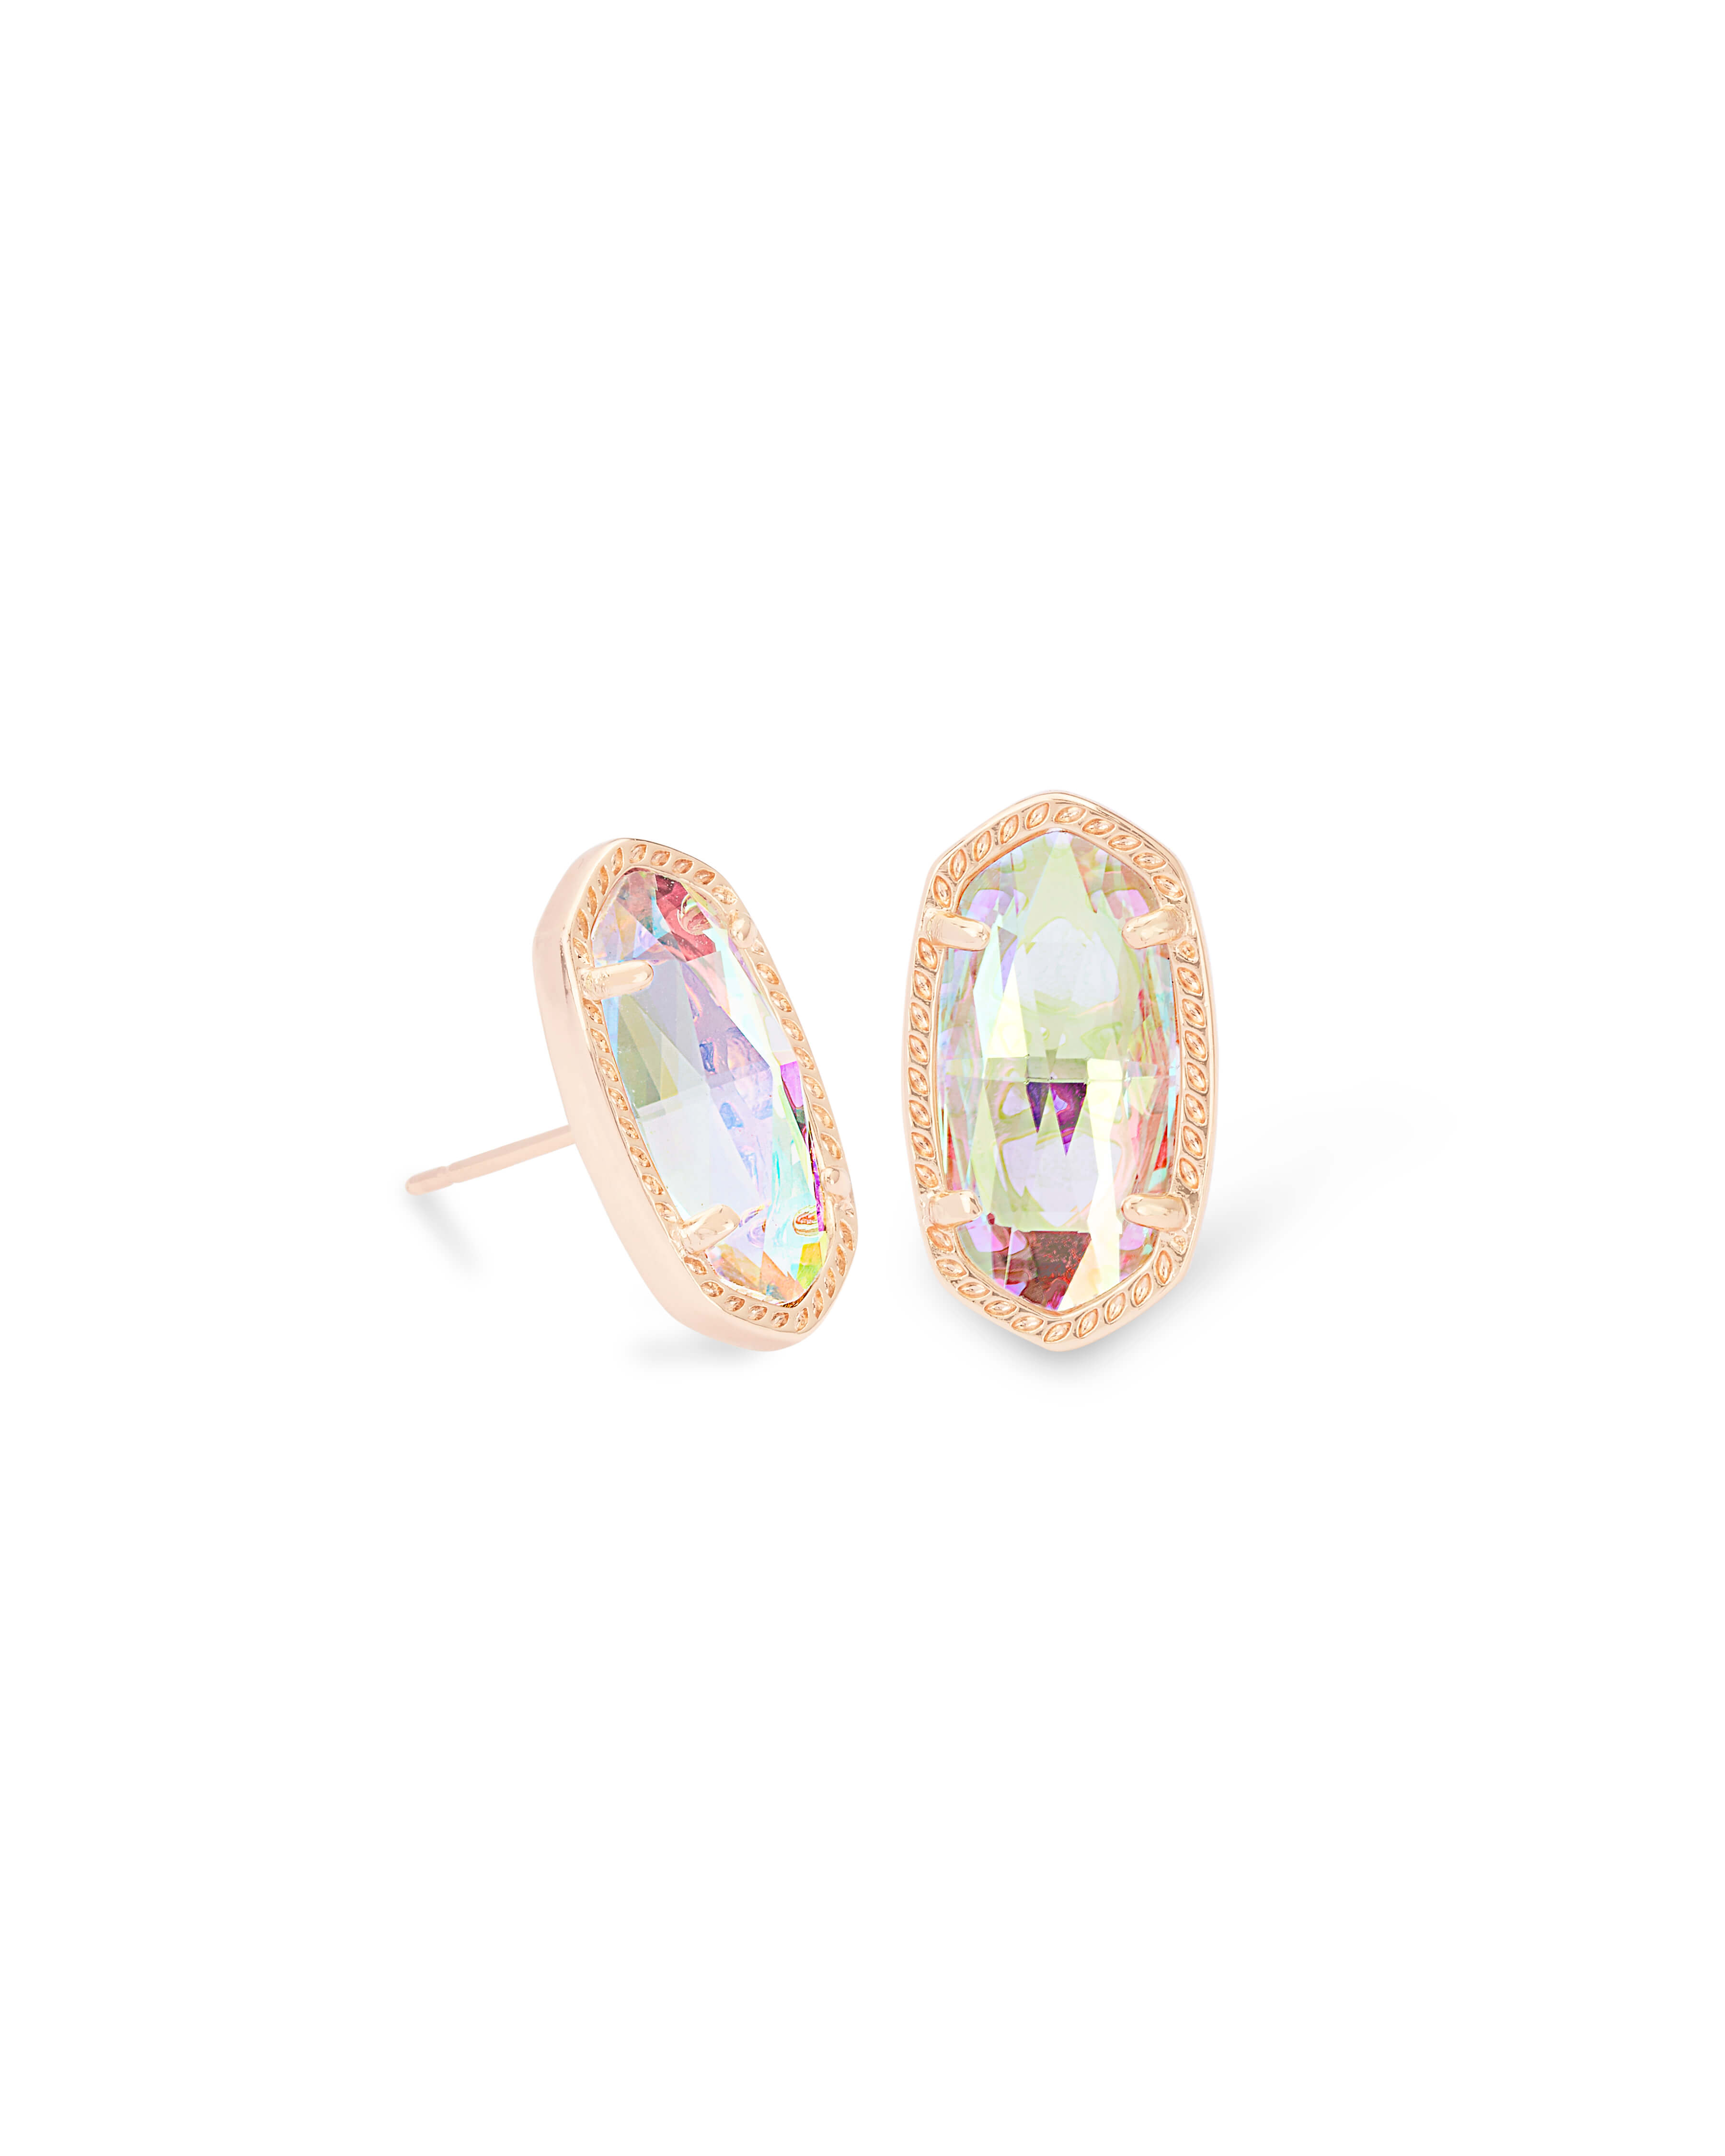 Ellie Rose Gold Stud Earrings in Dichroic Glass